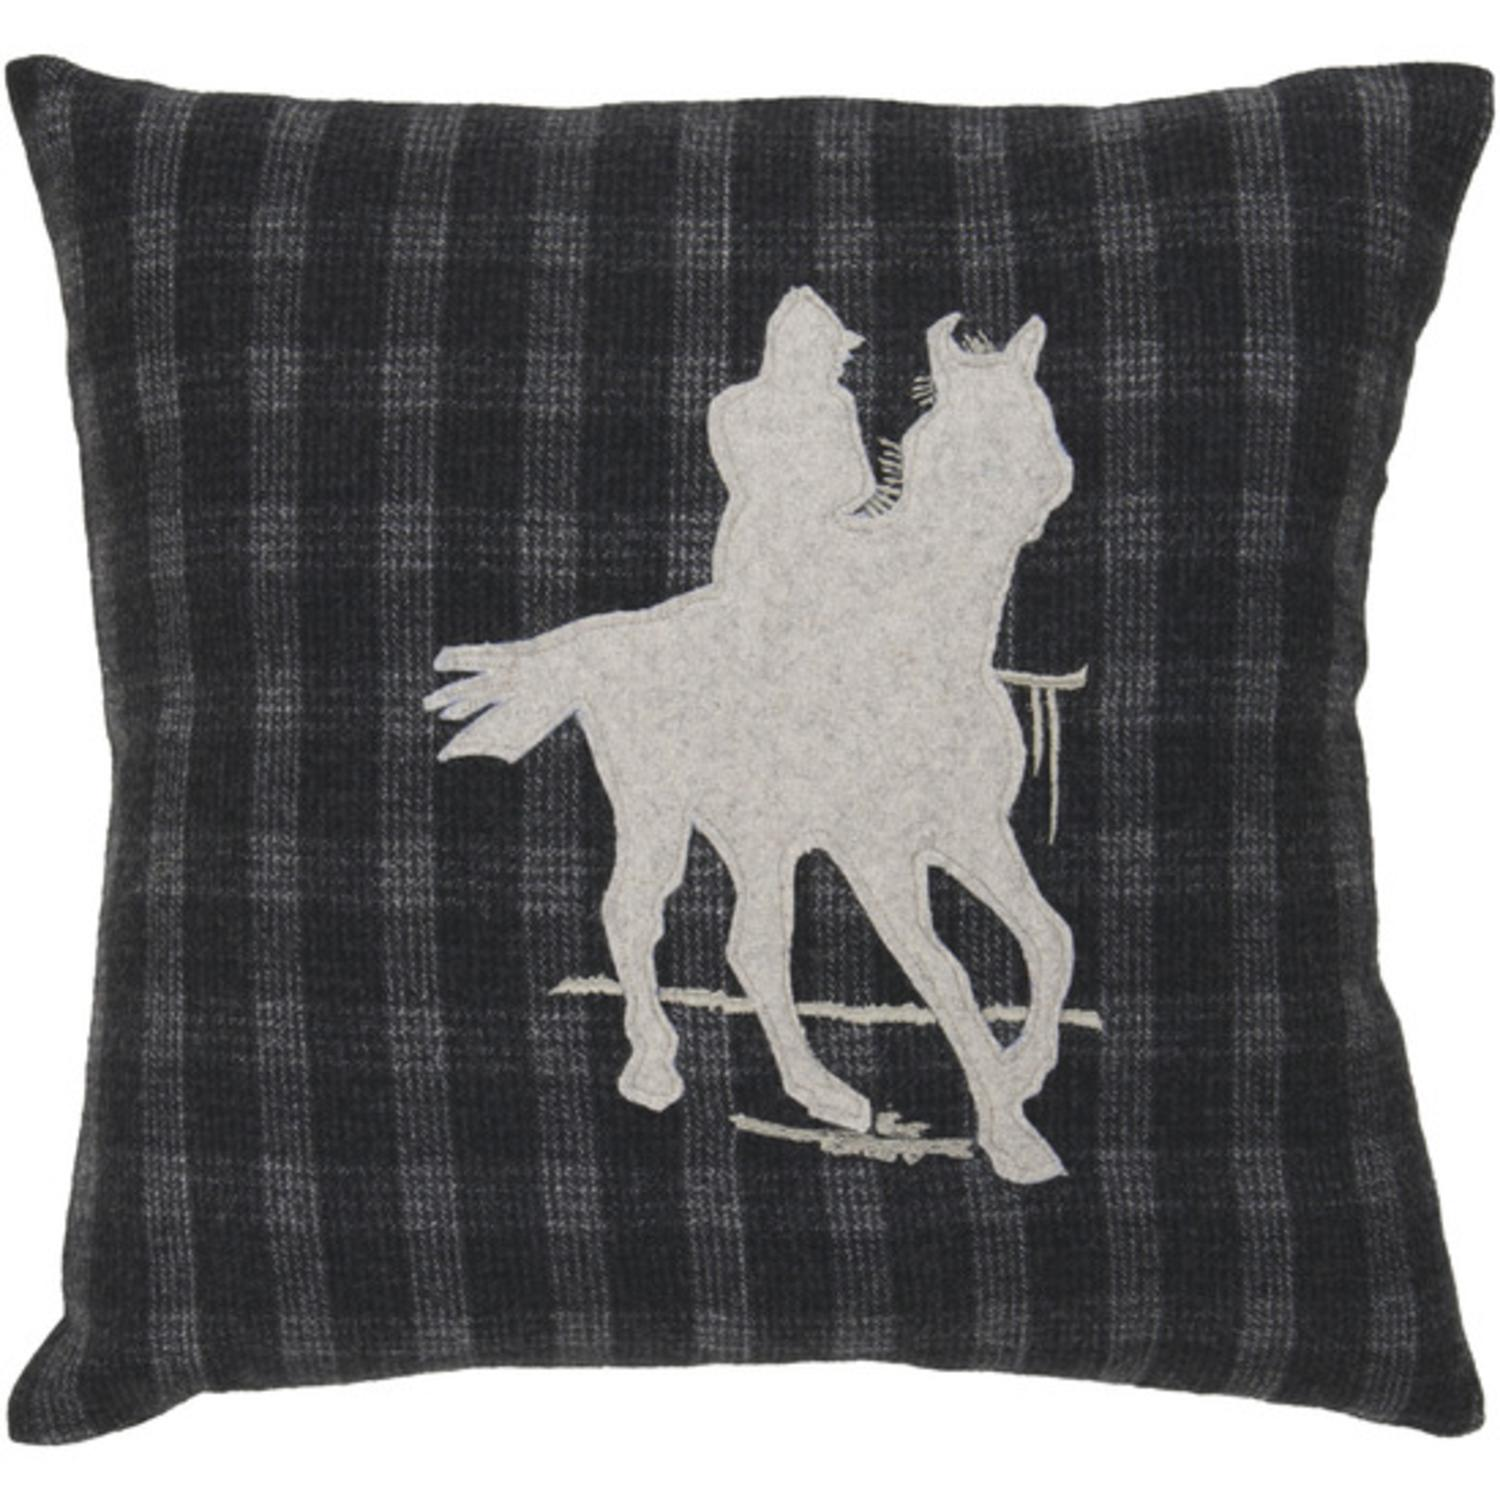 """22"""" Country Horse and Cowboy Silhouette on Plaid Decorative Throw Pillow"""